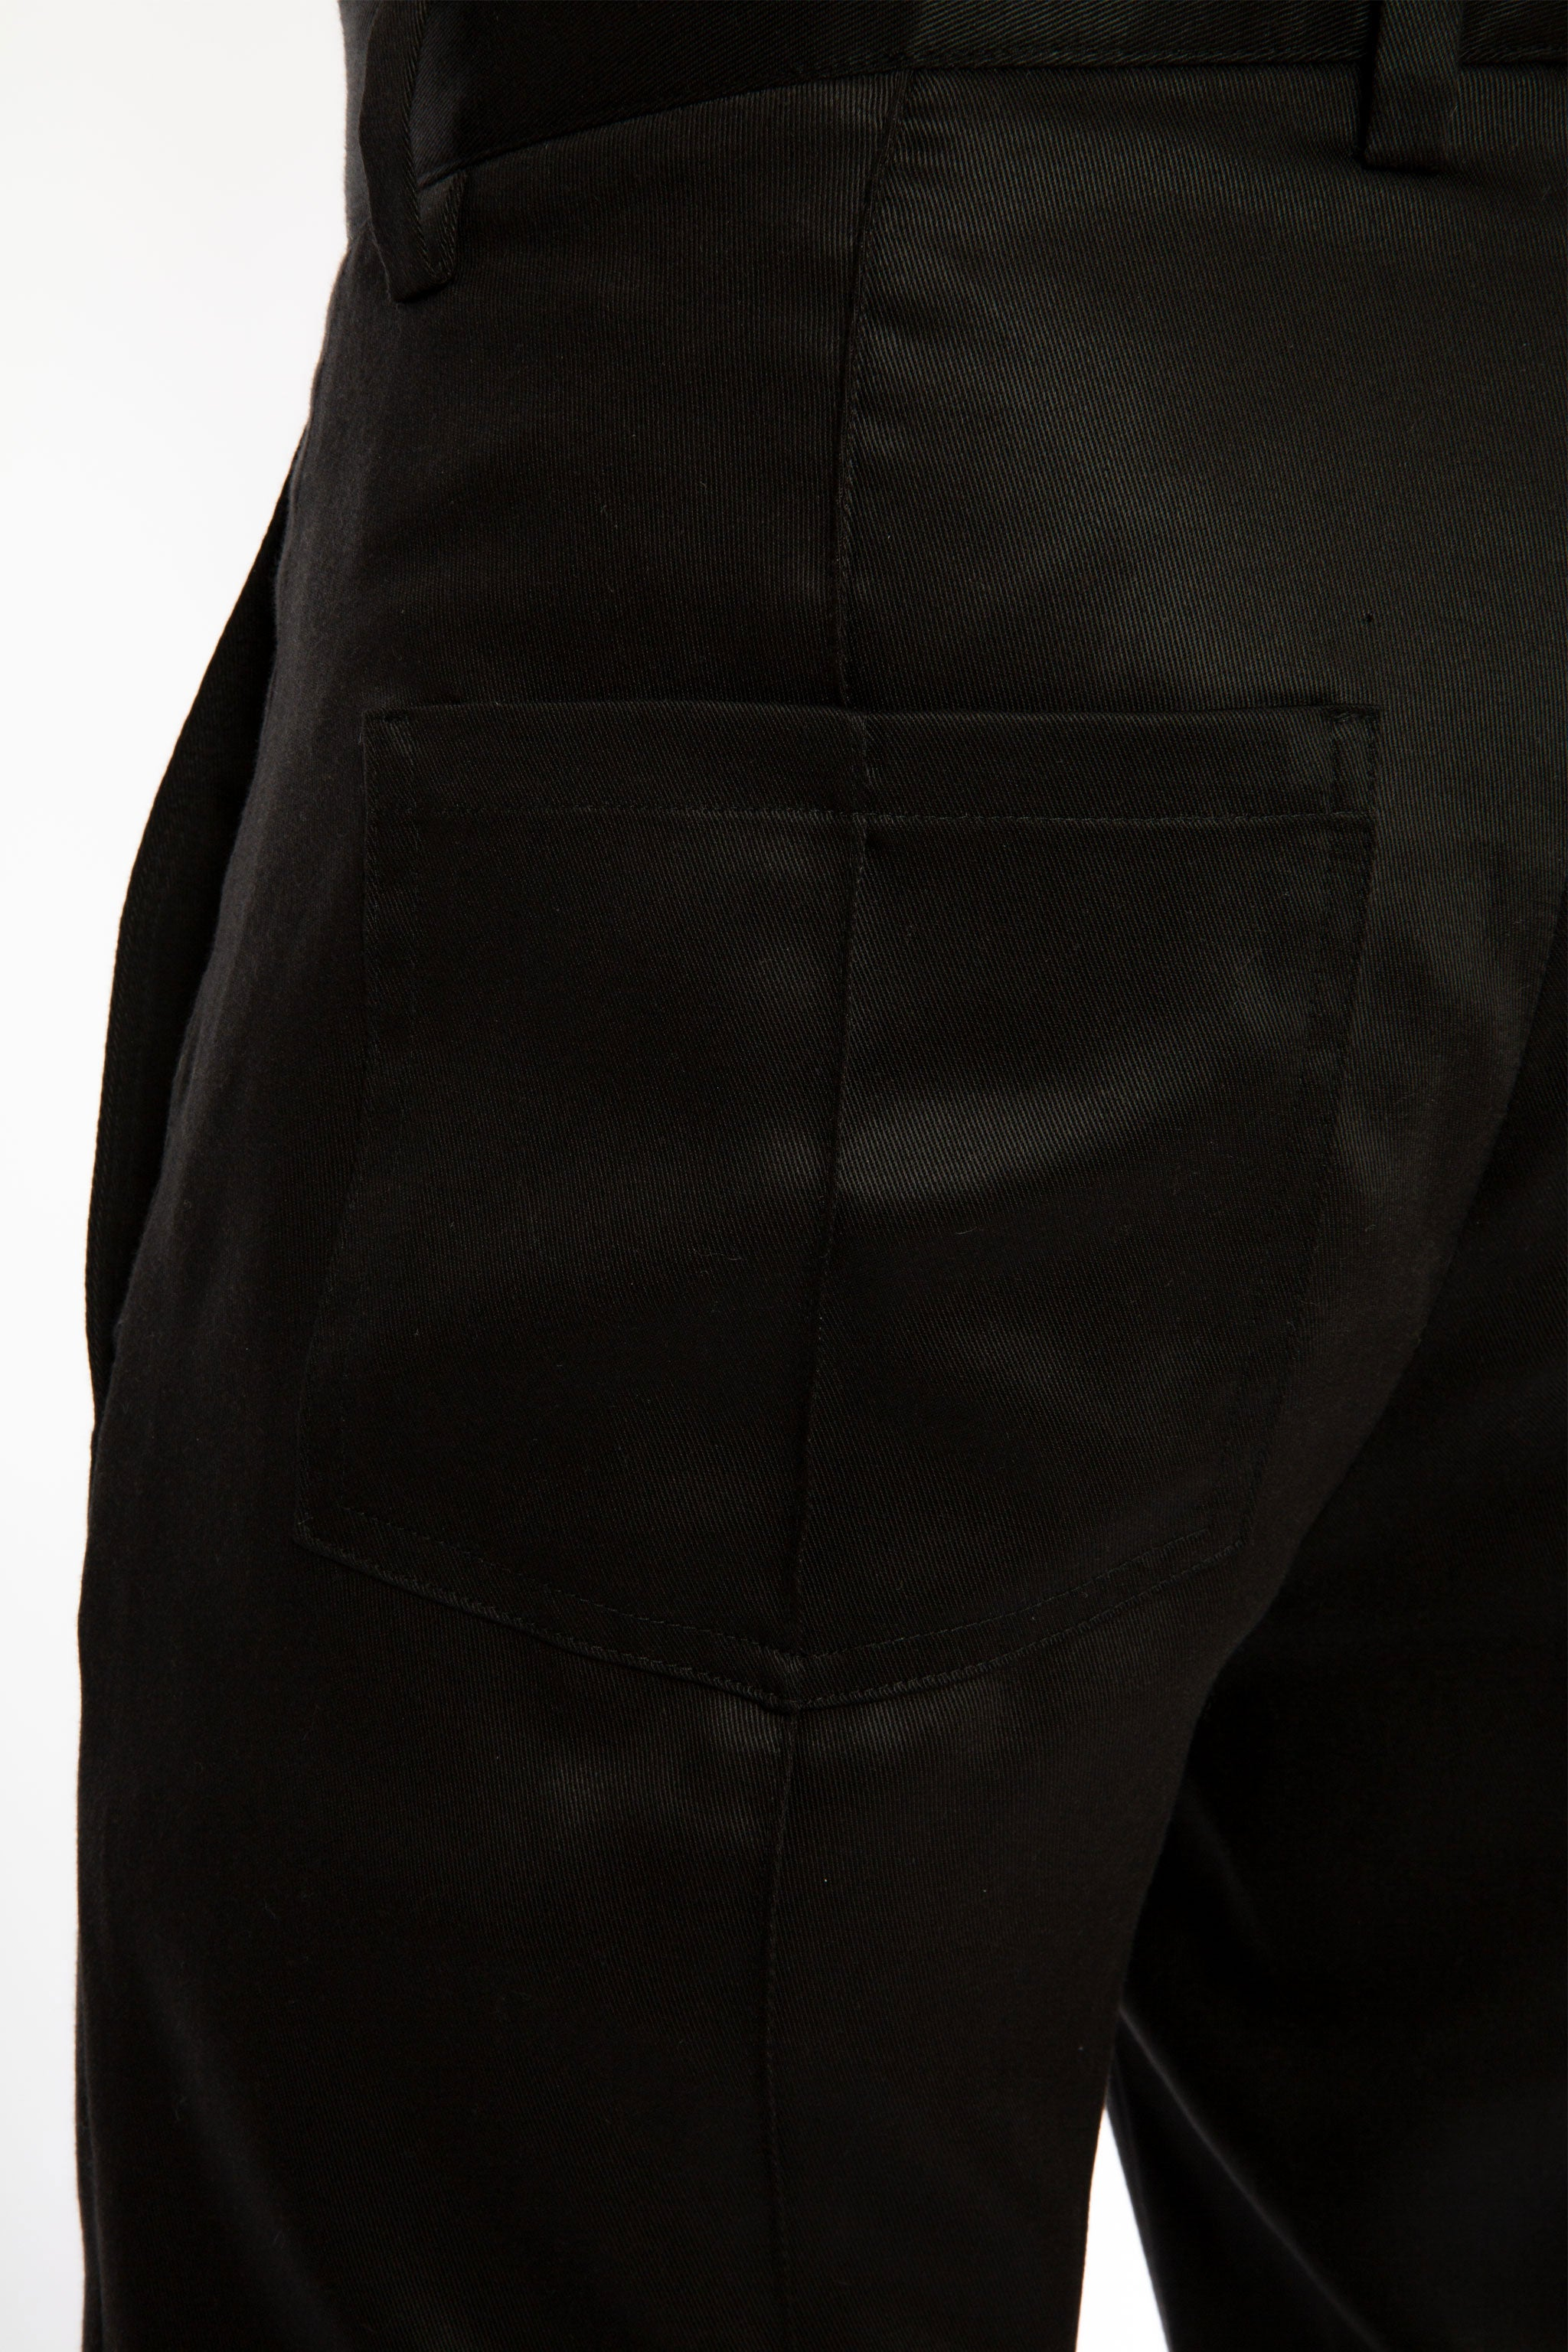 Goodfight SS19 Permapress Trouser Black